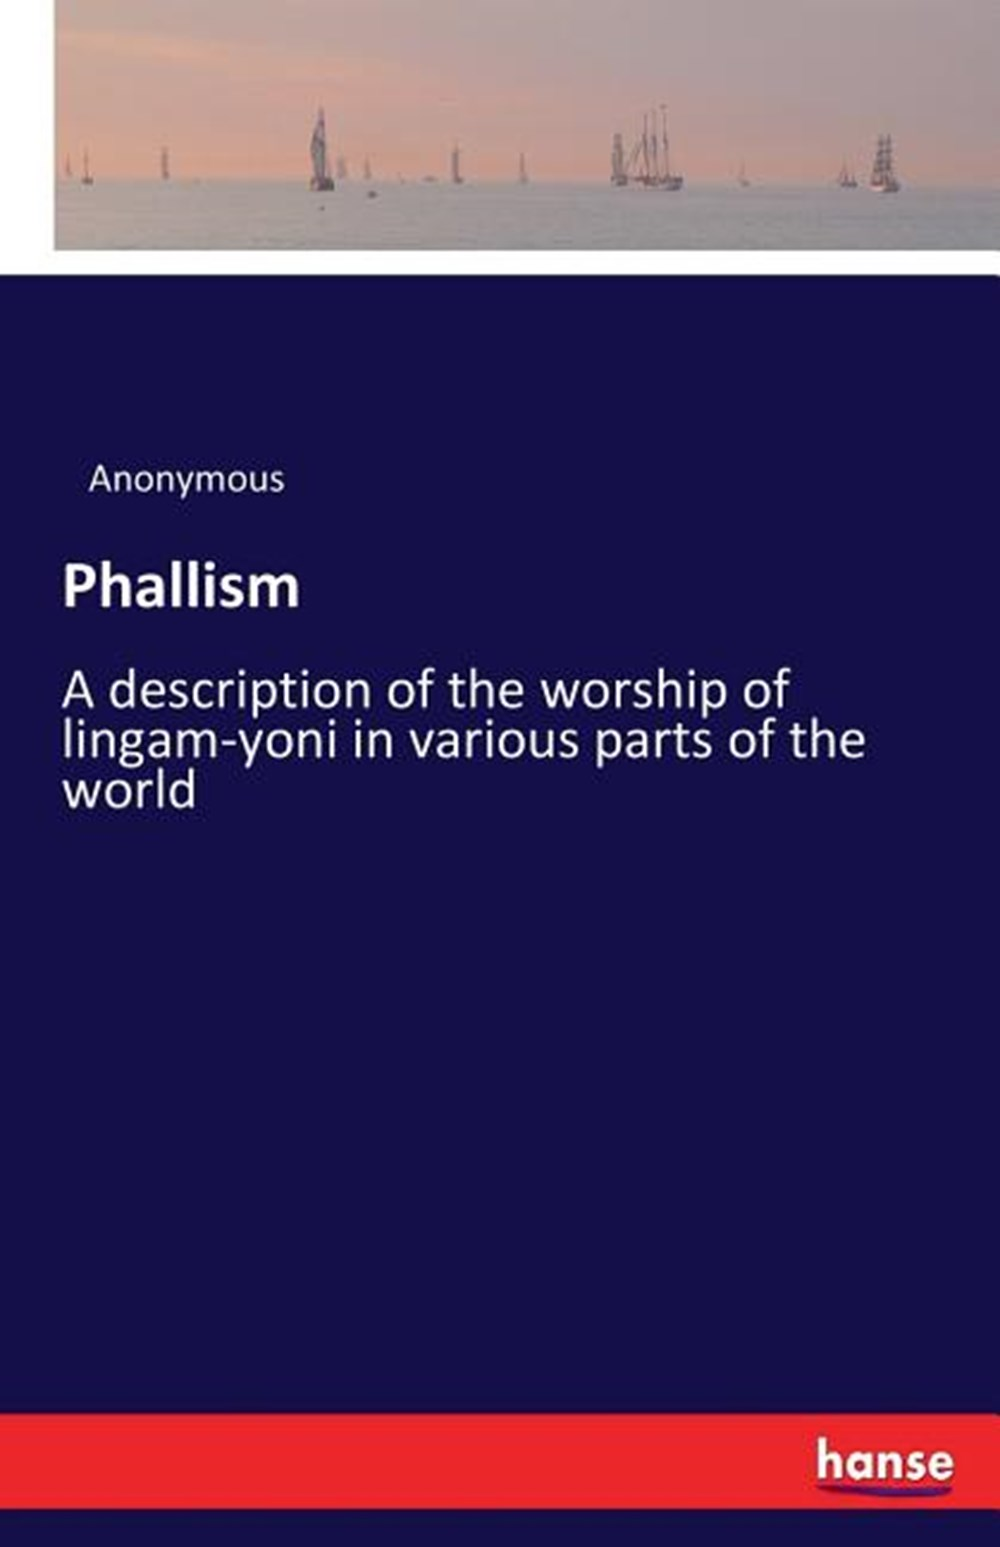 Phallism A description of the worship of lingam-yoni in various parts of the world